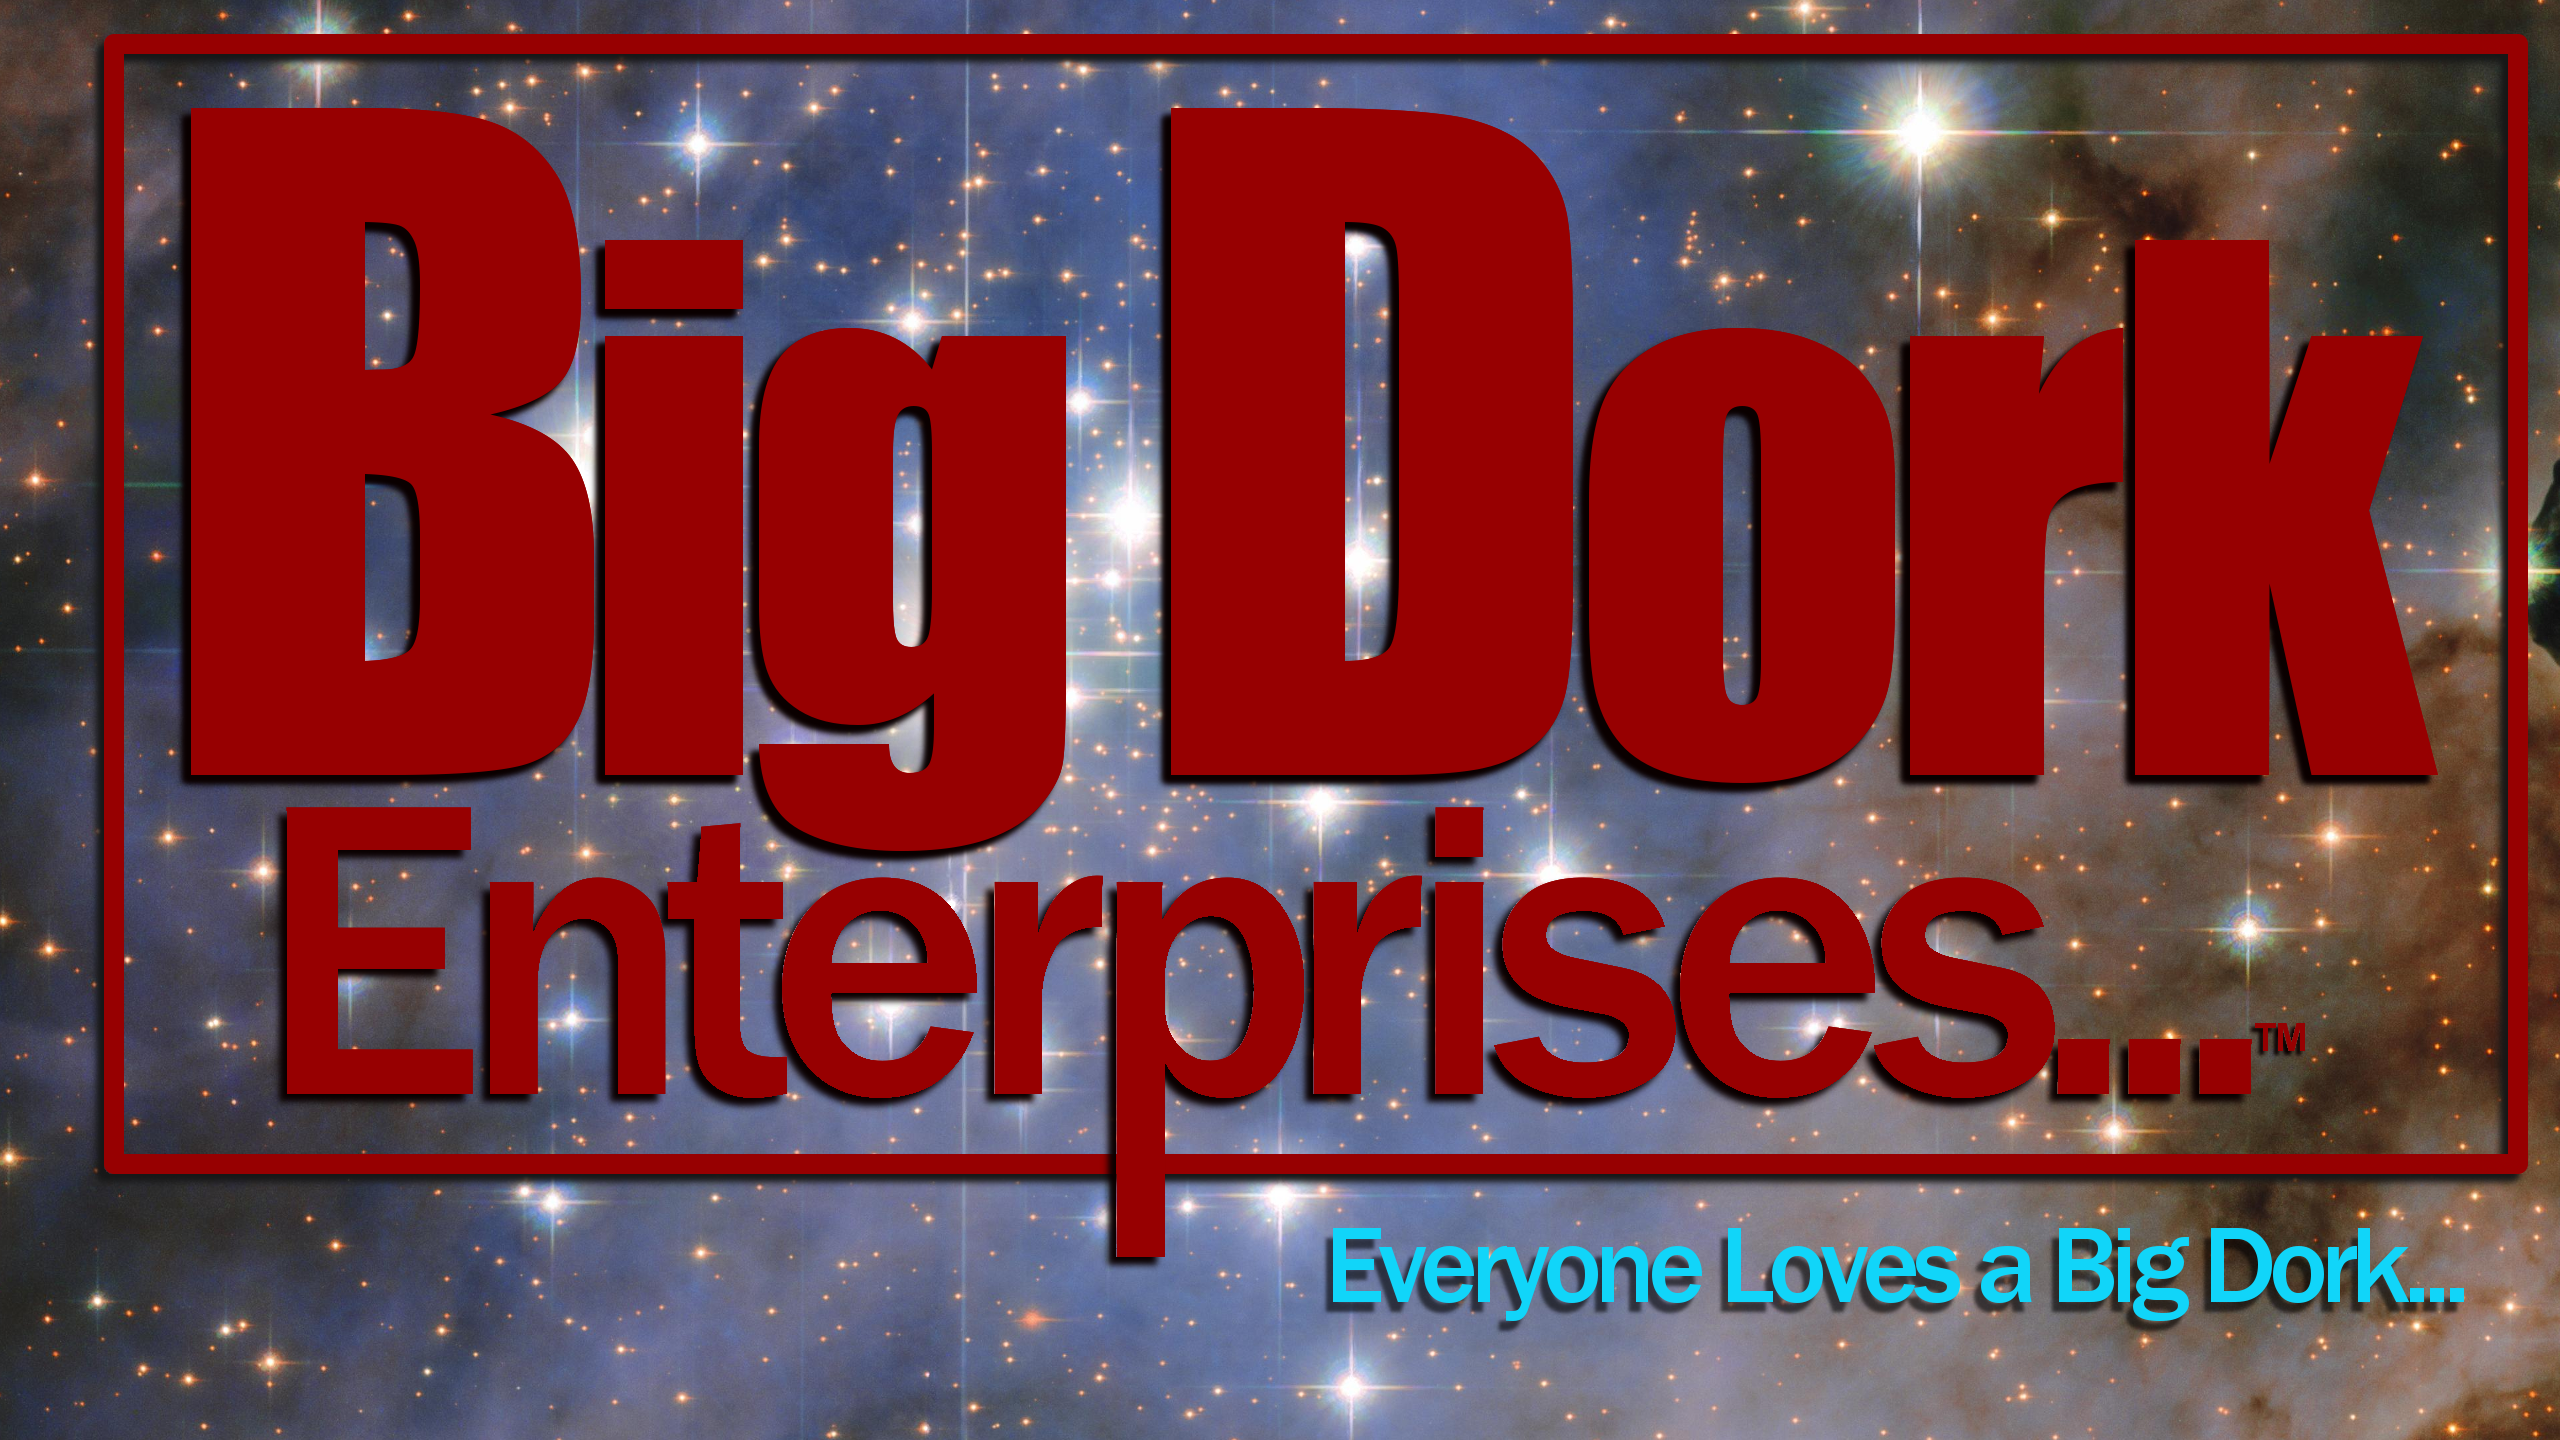 1be2382d74ef77 Big Dork Enterprises...